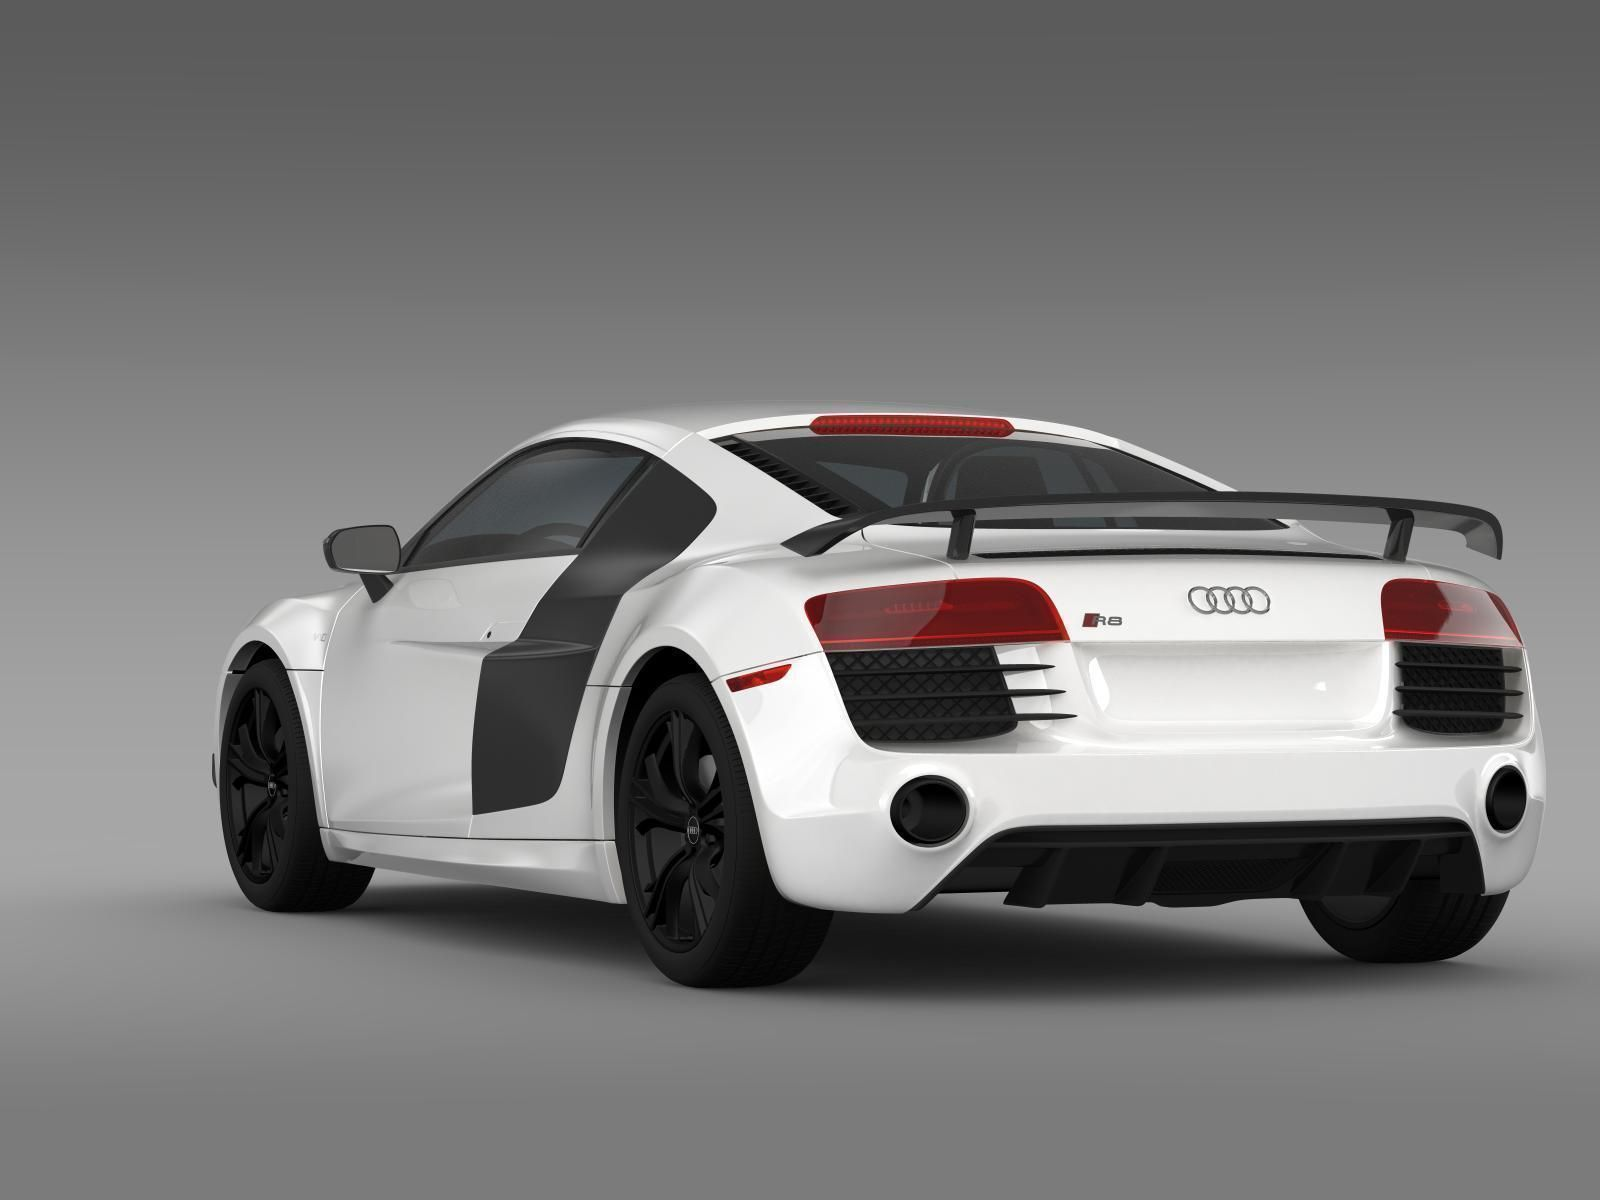 audi r8 petition 2015 3d model cgtrader